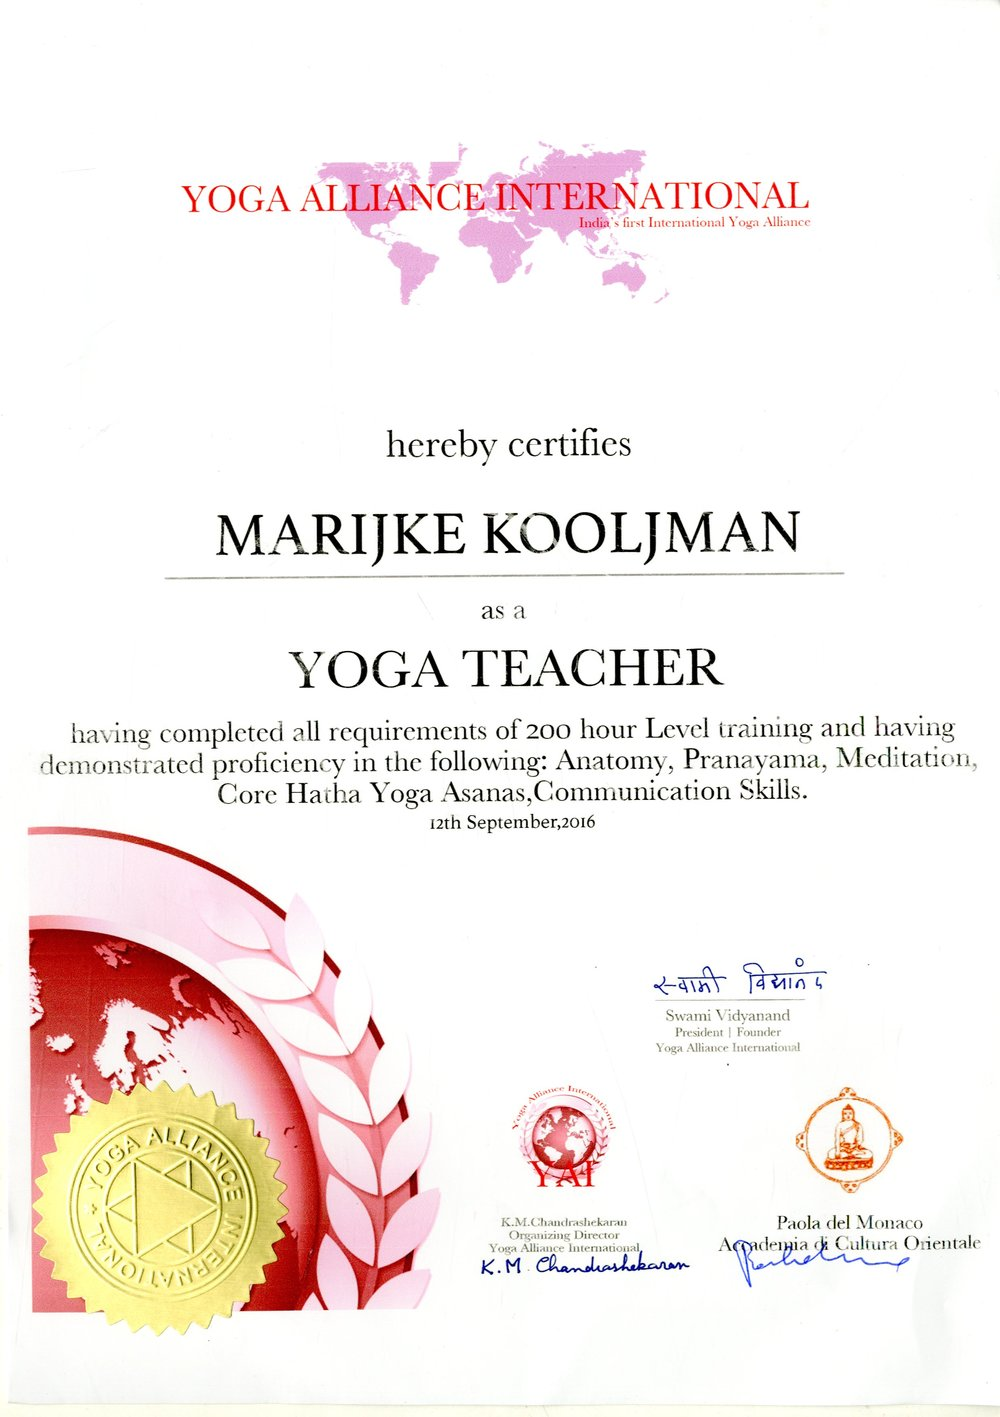 Diploma Yoga Alliance International (click for the full image)